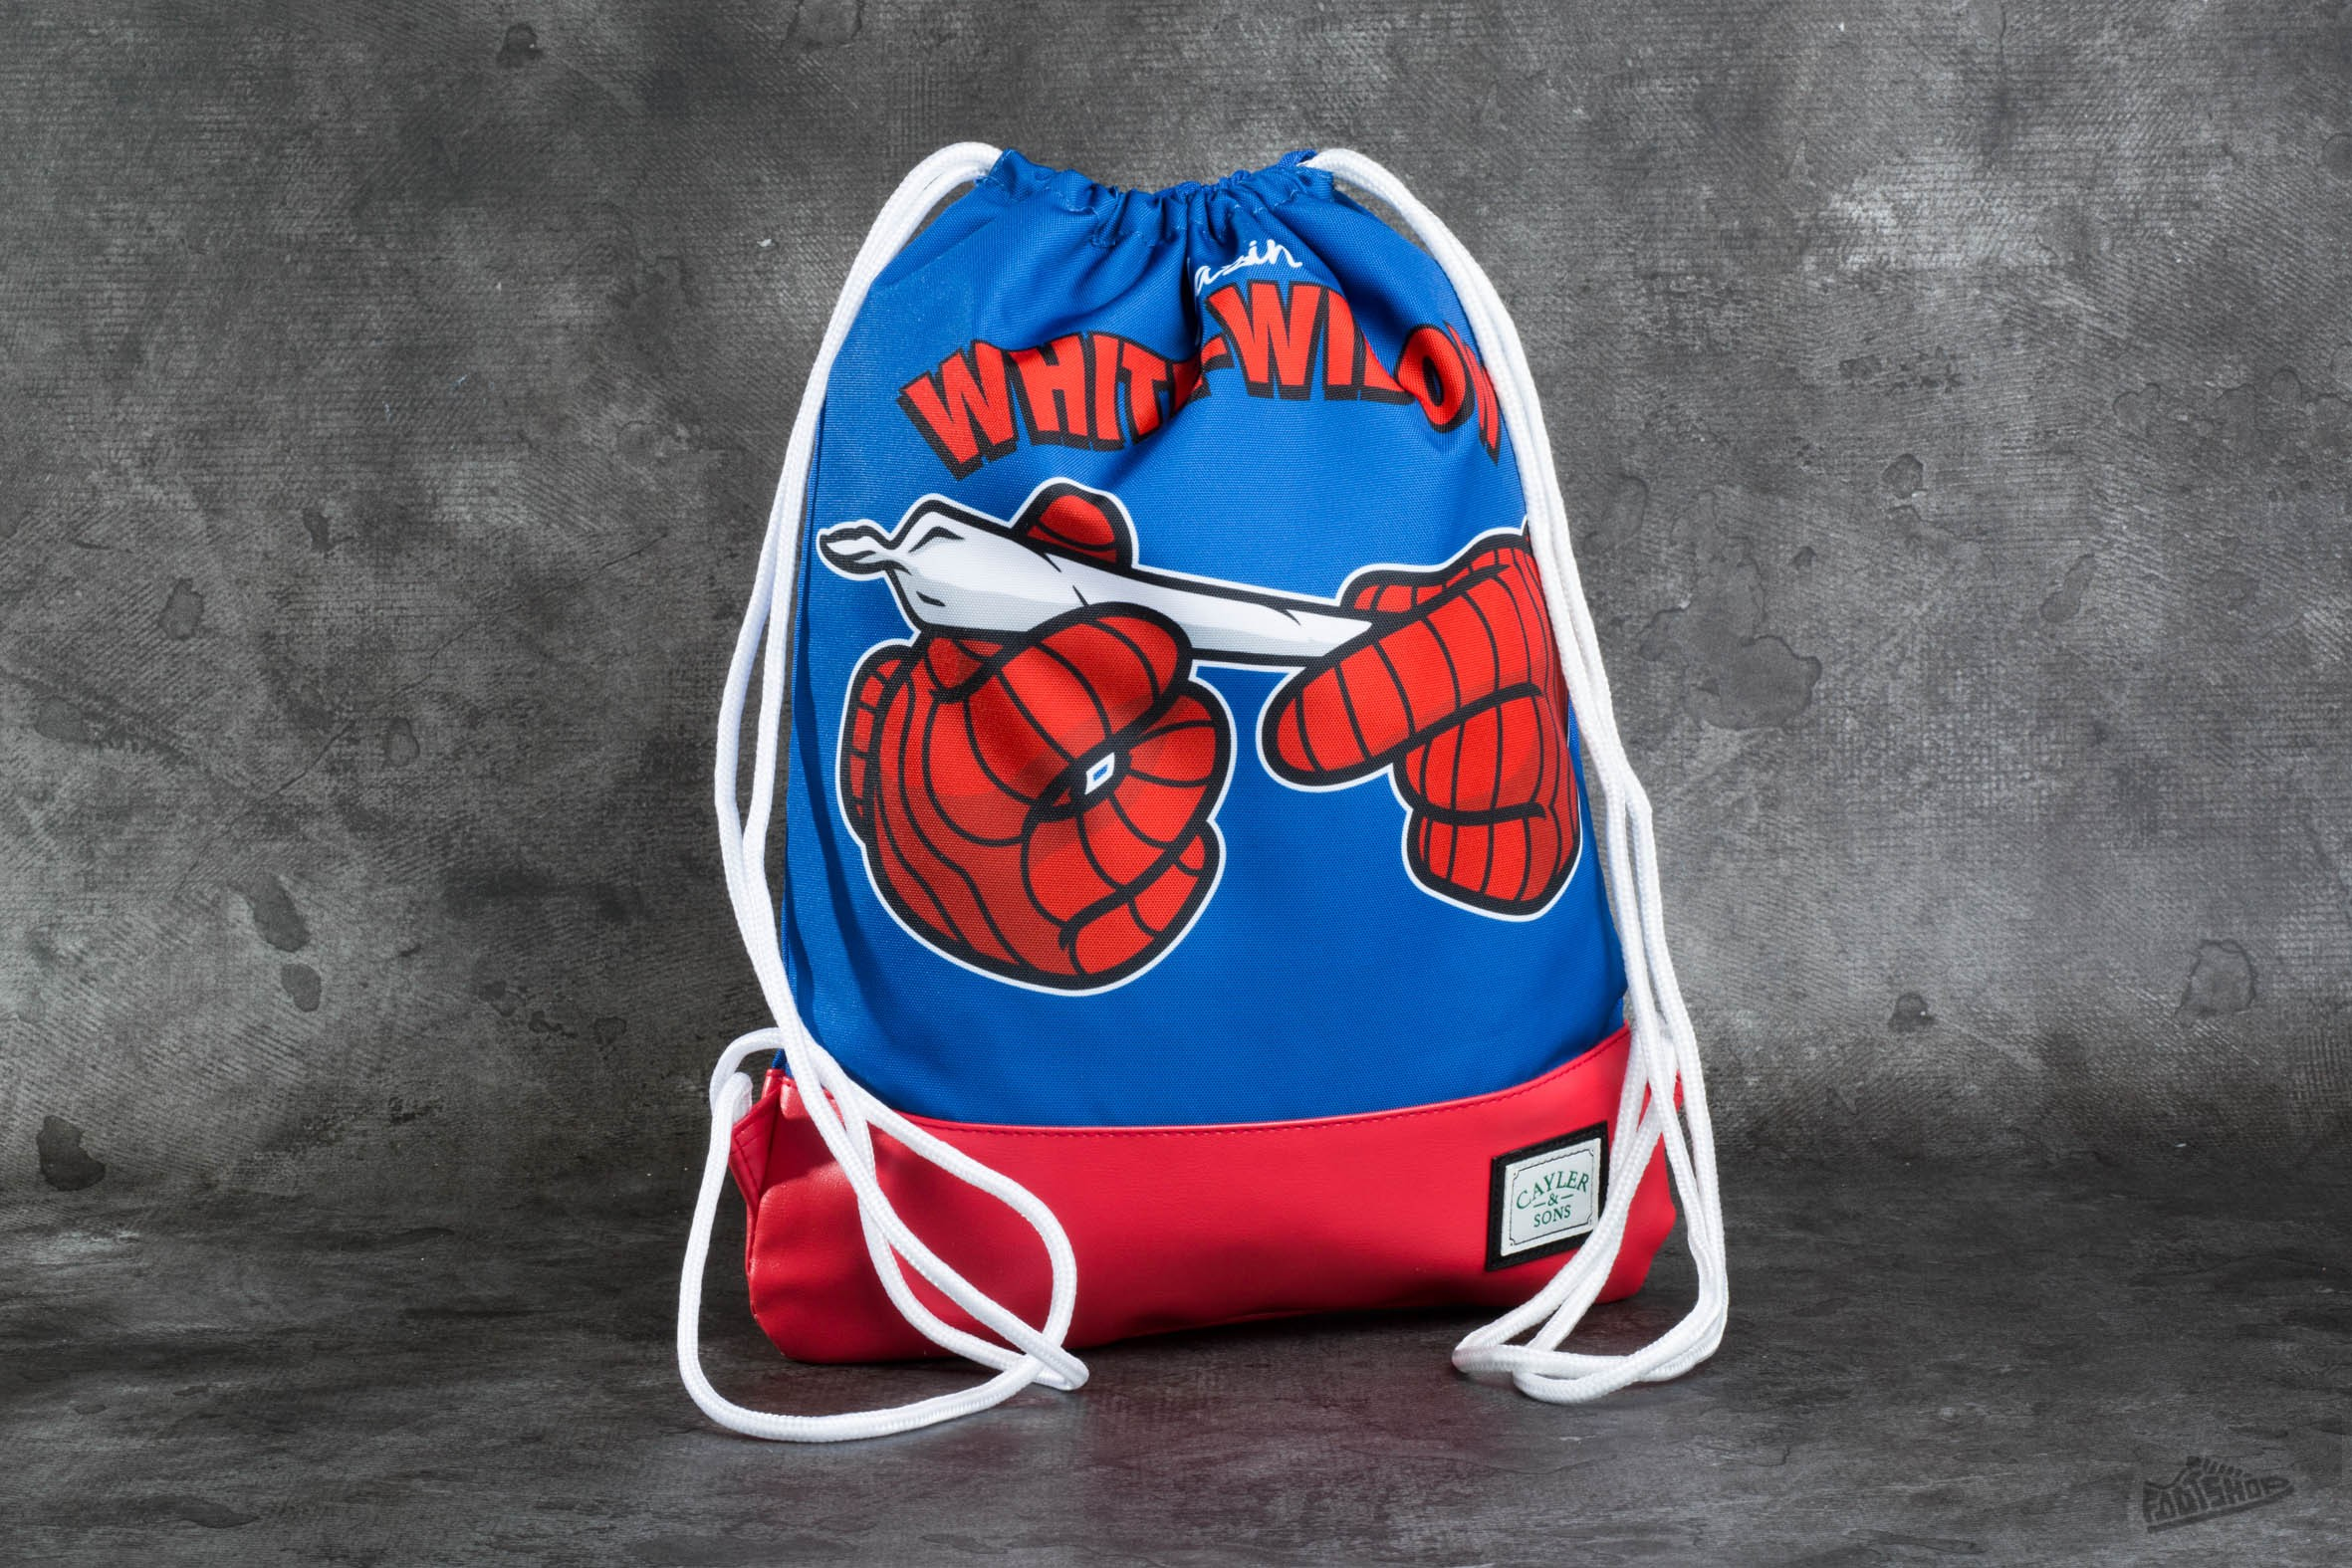 Cayler & Sons GL White Widow Gym Bag Royal Blue/Red/White